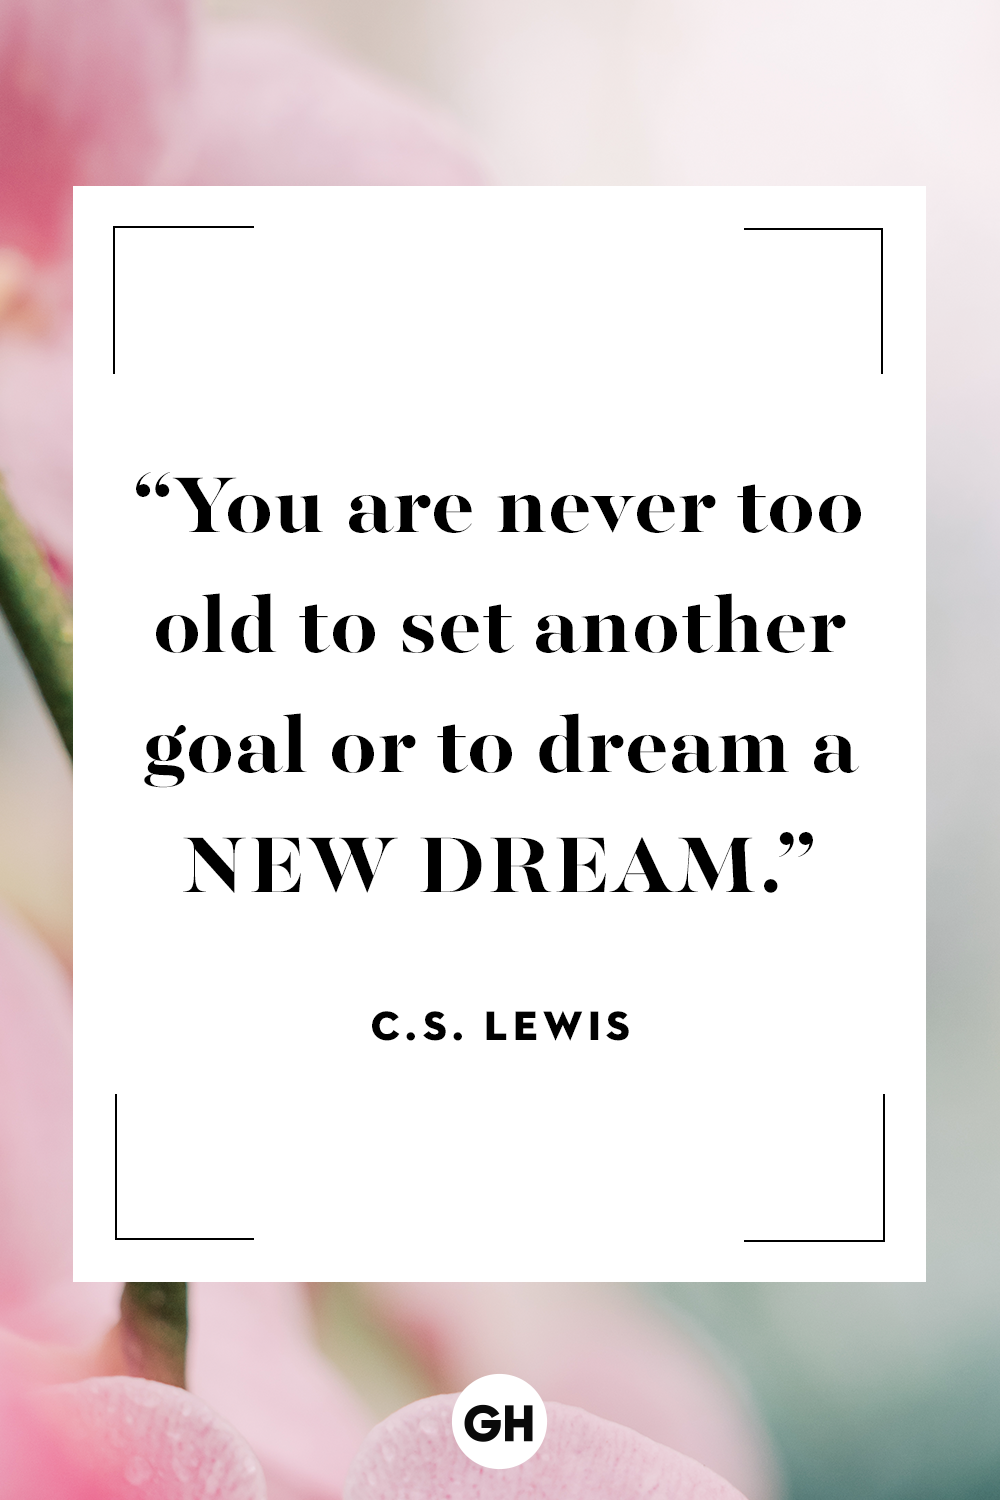 Inspirational Quotes, You Are Never Too Old To Set Another Goal